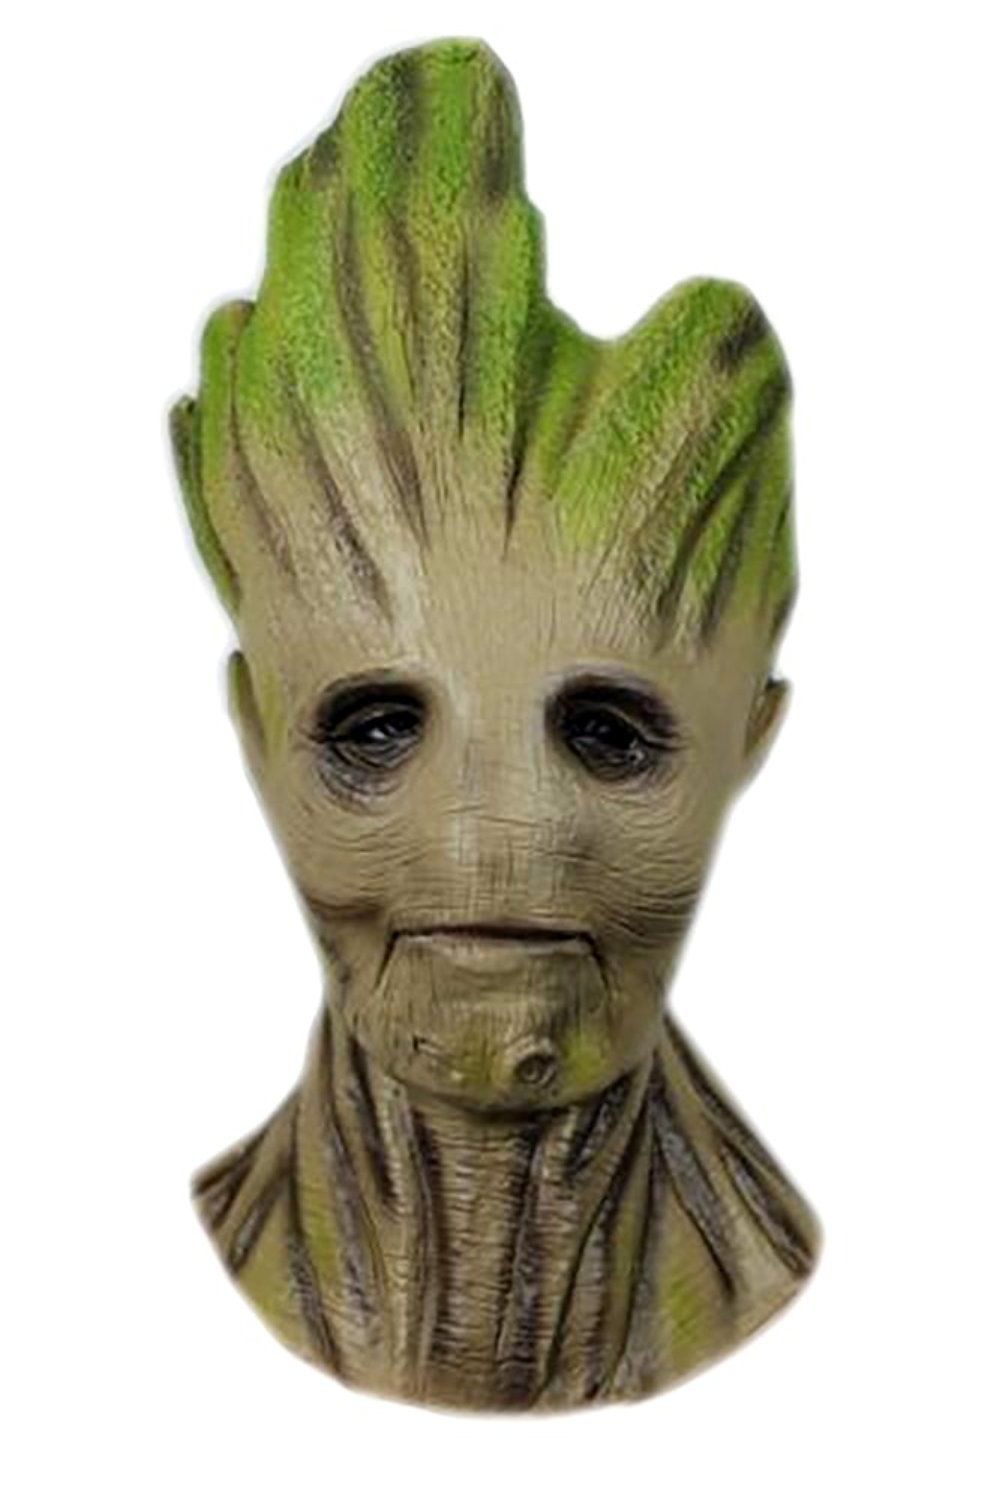 Beautiful Groot Tree Head Mask   Deluxeadultcostumes.com/guardians Of The Galaxy Mens  Costumes/